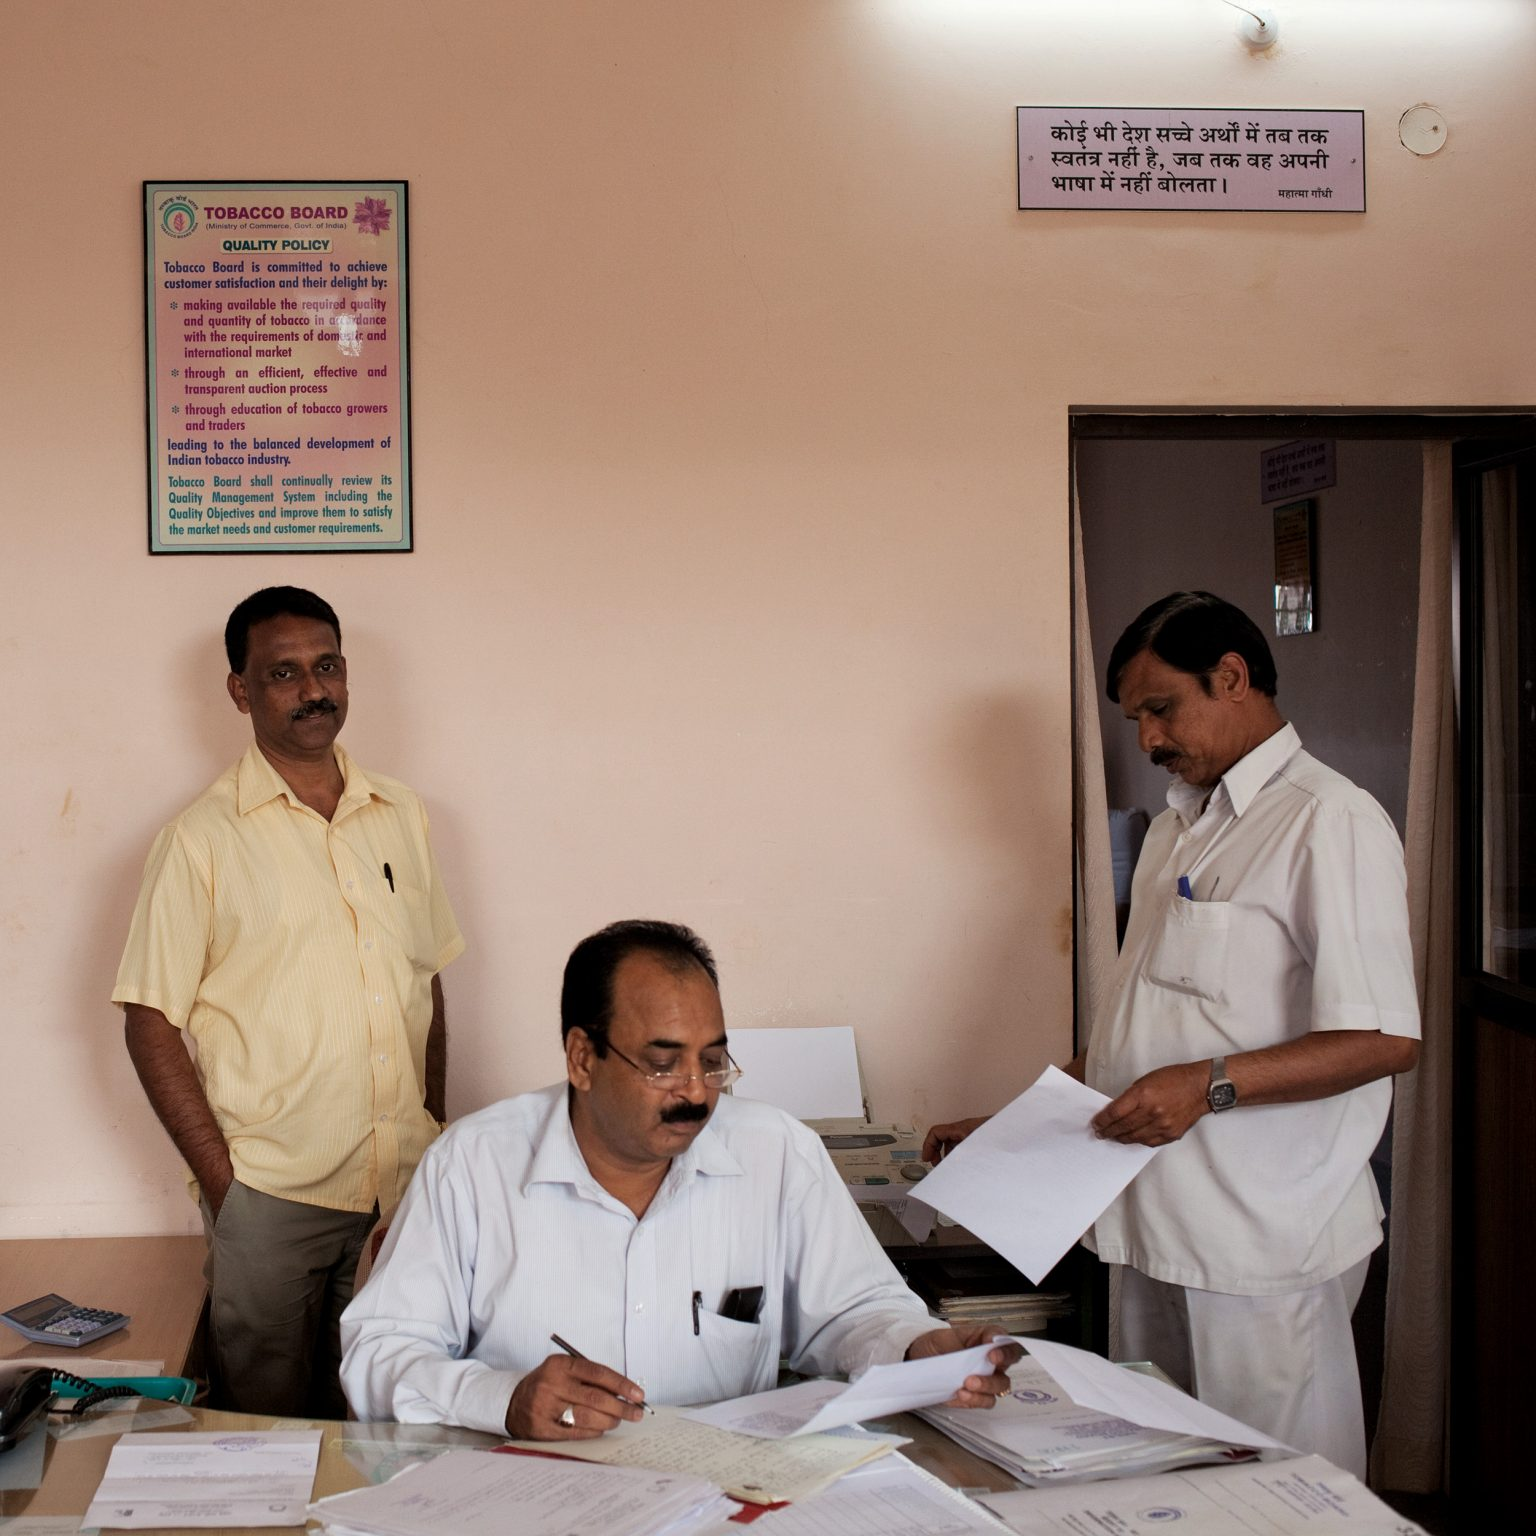 Mysore, India. Tobacco Board Headquarters. Ganesh V.K. (left), senior grading officer, Mr Maiesh (center), field assistant, and an office employee (right). The central government regulates the production and selling of flue-cured Virgina (cigarette) tobacco, and runs a series of auction platforms where farmers and tobacco companies can have a direct relationship. In addition, the Tobacco Board controls the number of tobacco farmers by providing production licenses.